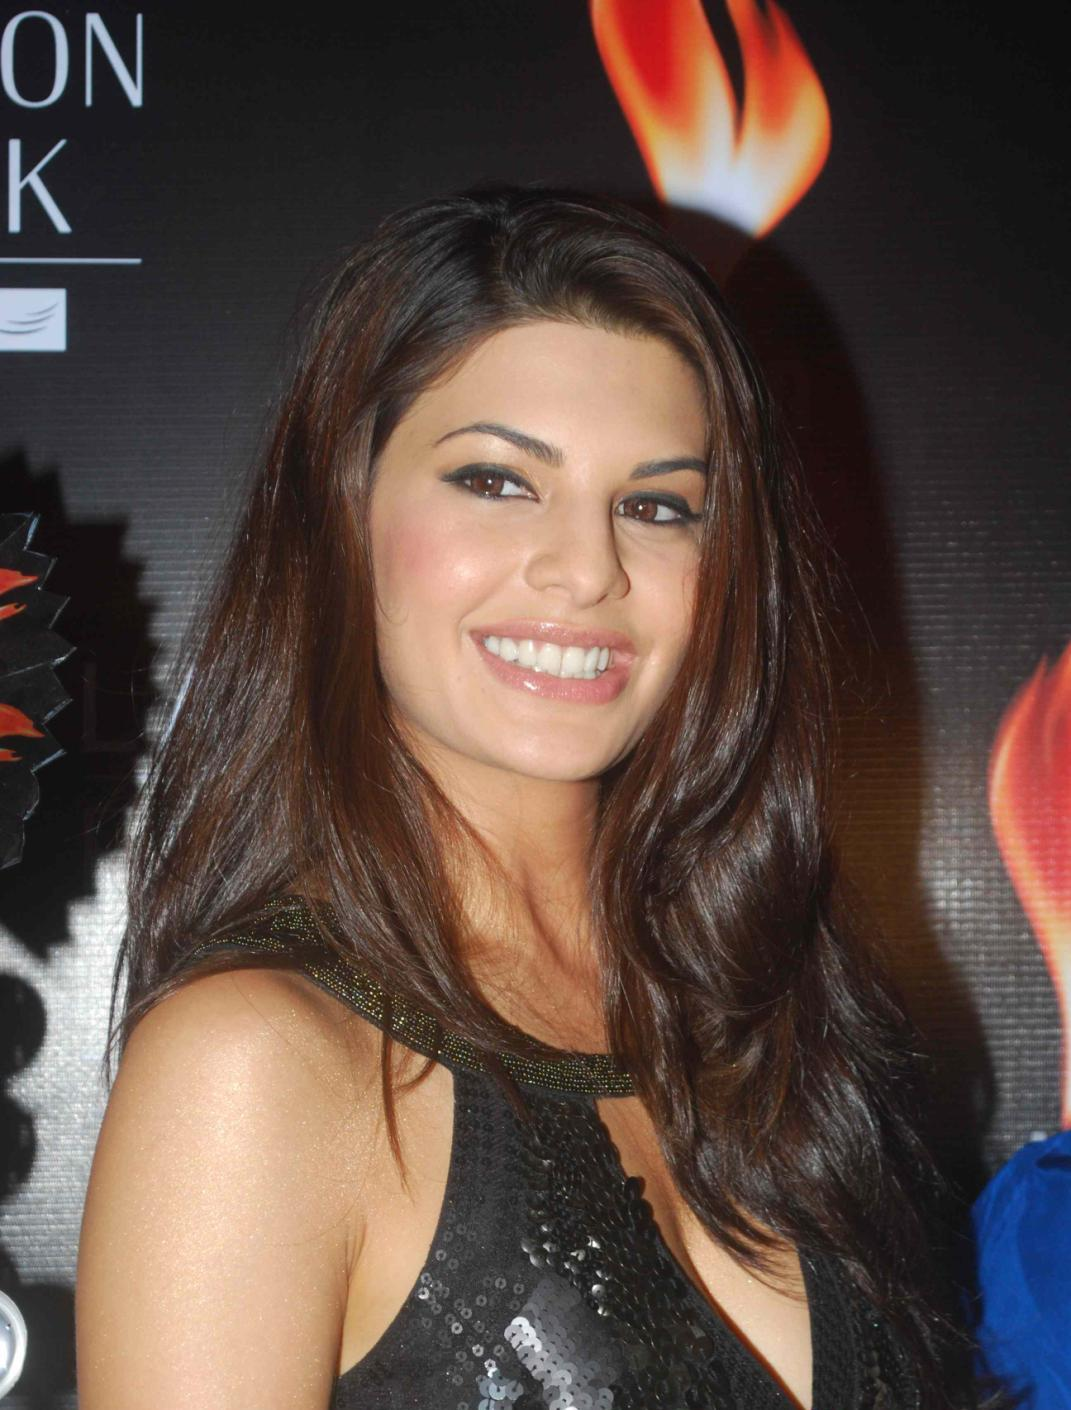 High Quality Bollywood Celebrity Pictures: Jacqueline